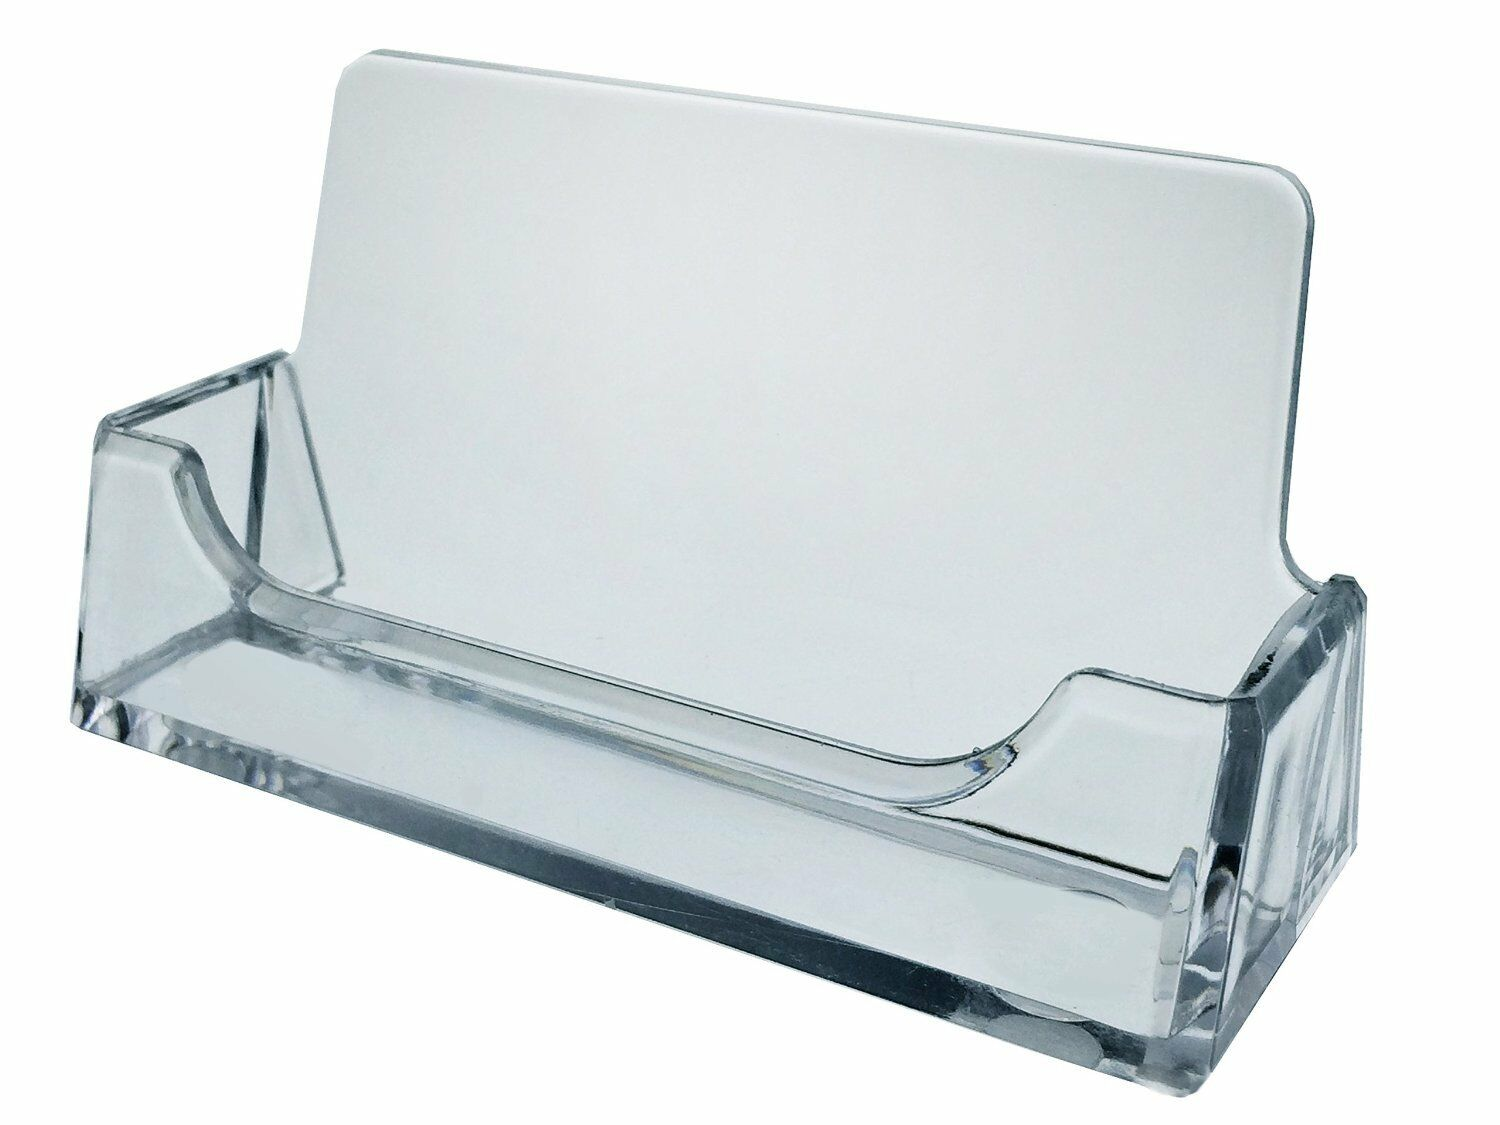 AZM 50 Business Card Holder Desktop Clear Acrylic Display Fast | eBay